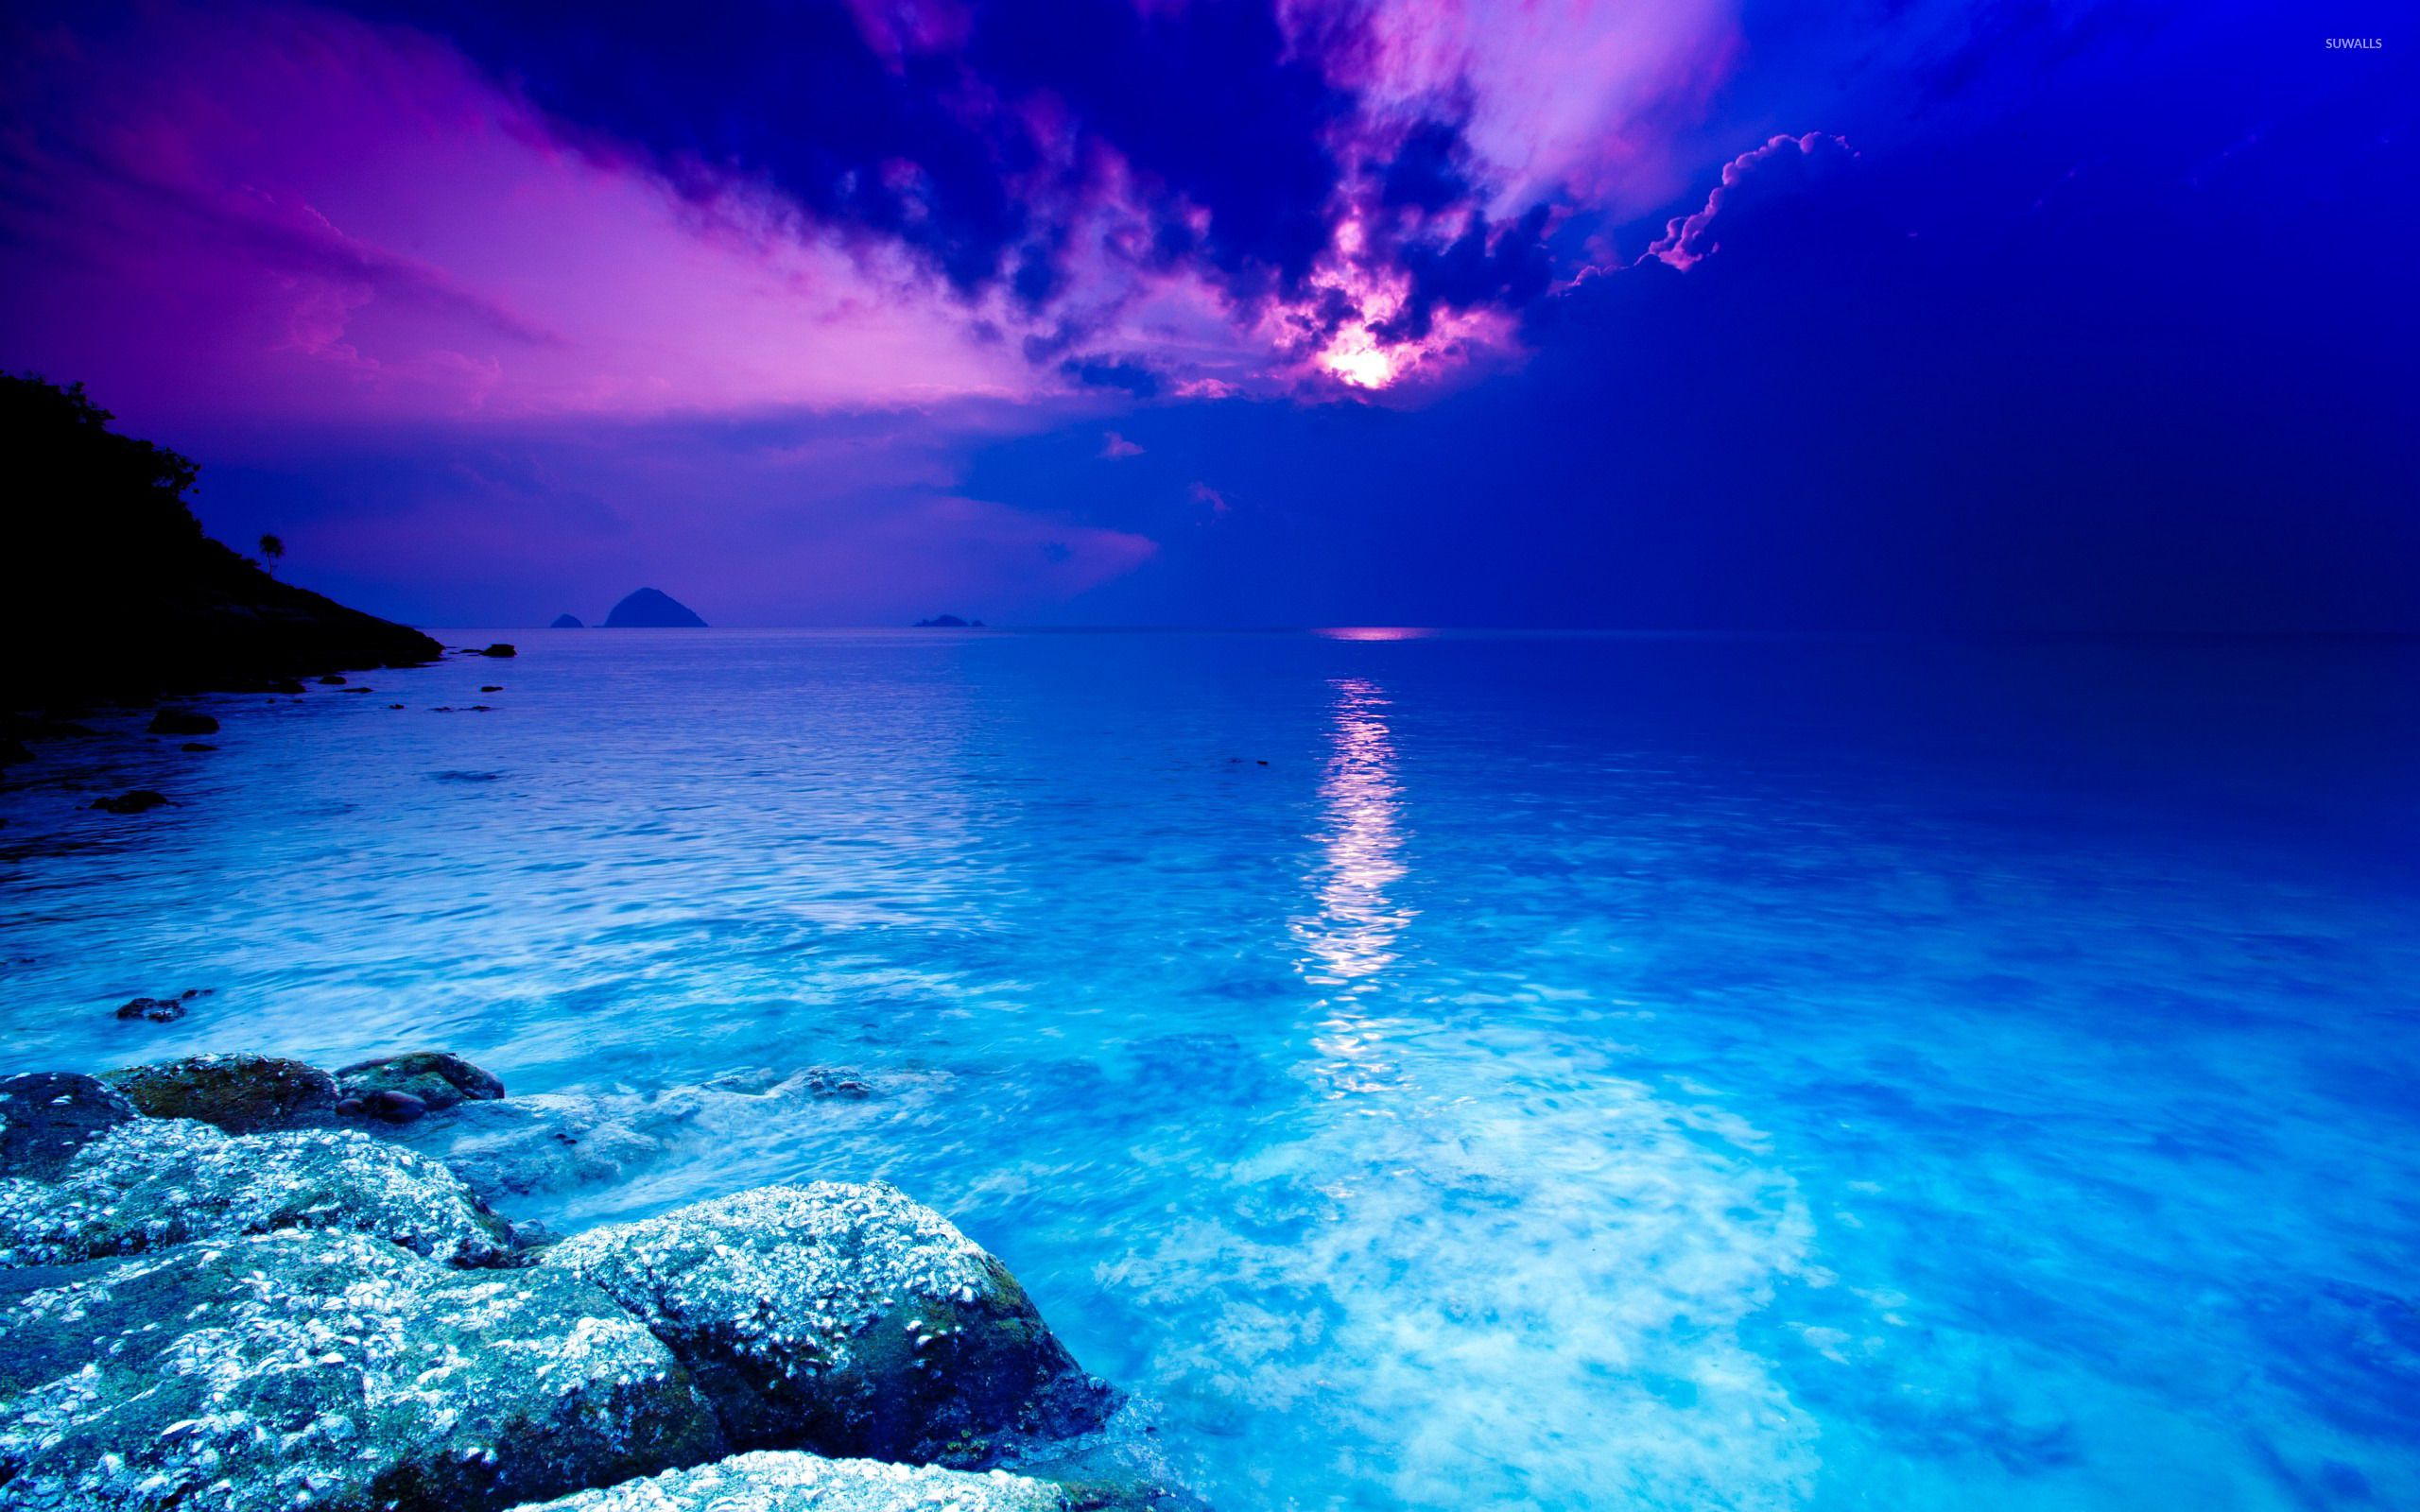 Blue Sea Wallpapers Top Free Blue Sea Backgrounds